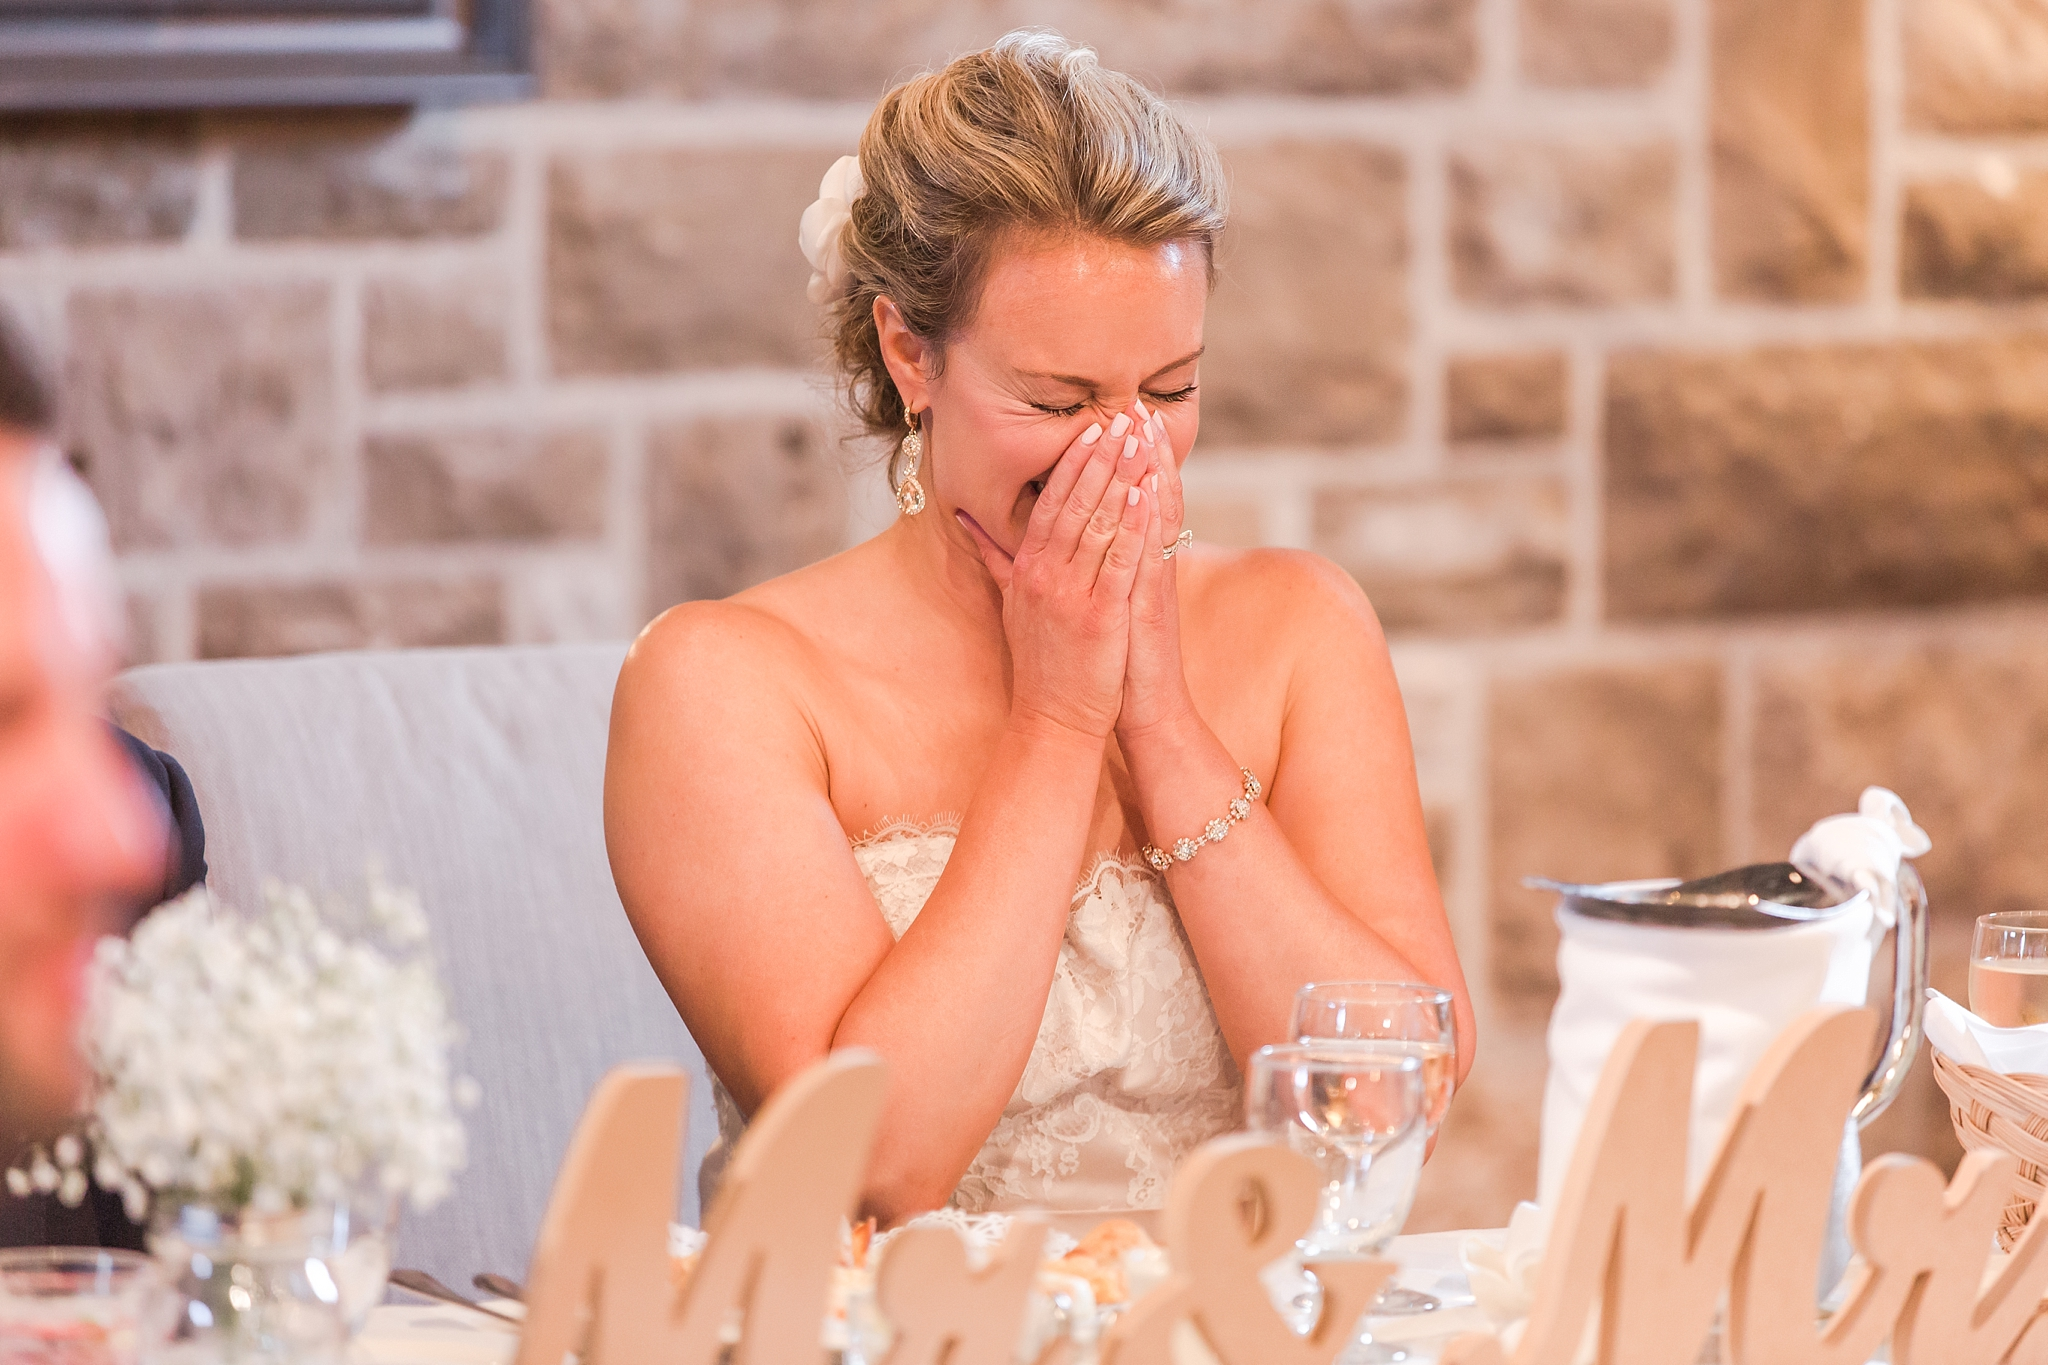 fun-candid-laid-back-wedding-photos-at-wellers-carriage-house-in-saline-michigan-and-at-the-eagle-crest-golf-resort-by-courtney-carolyn-photography_0085.jpg